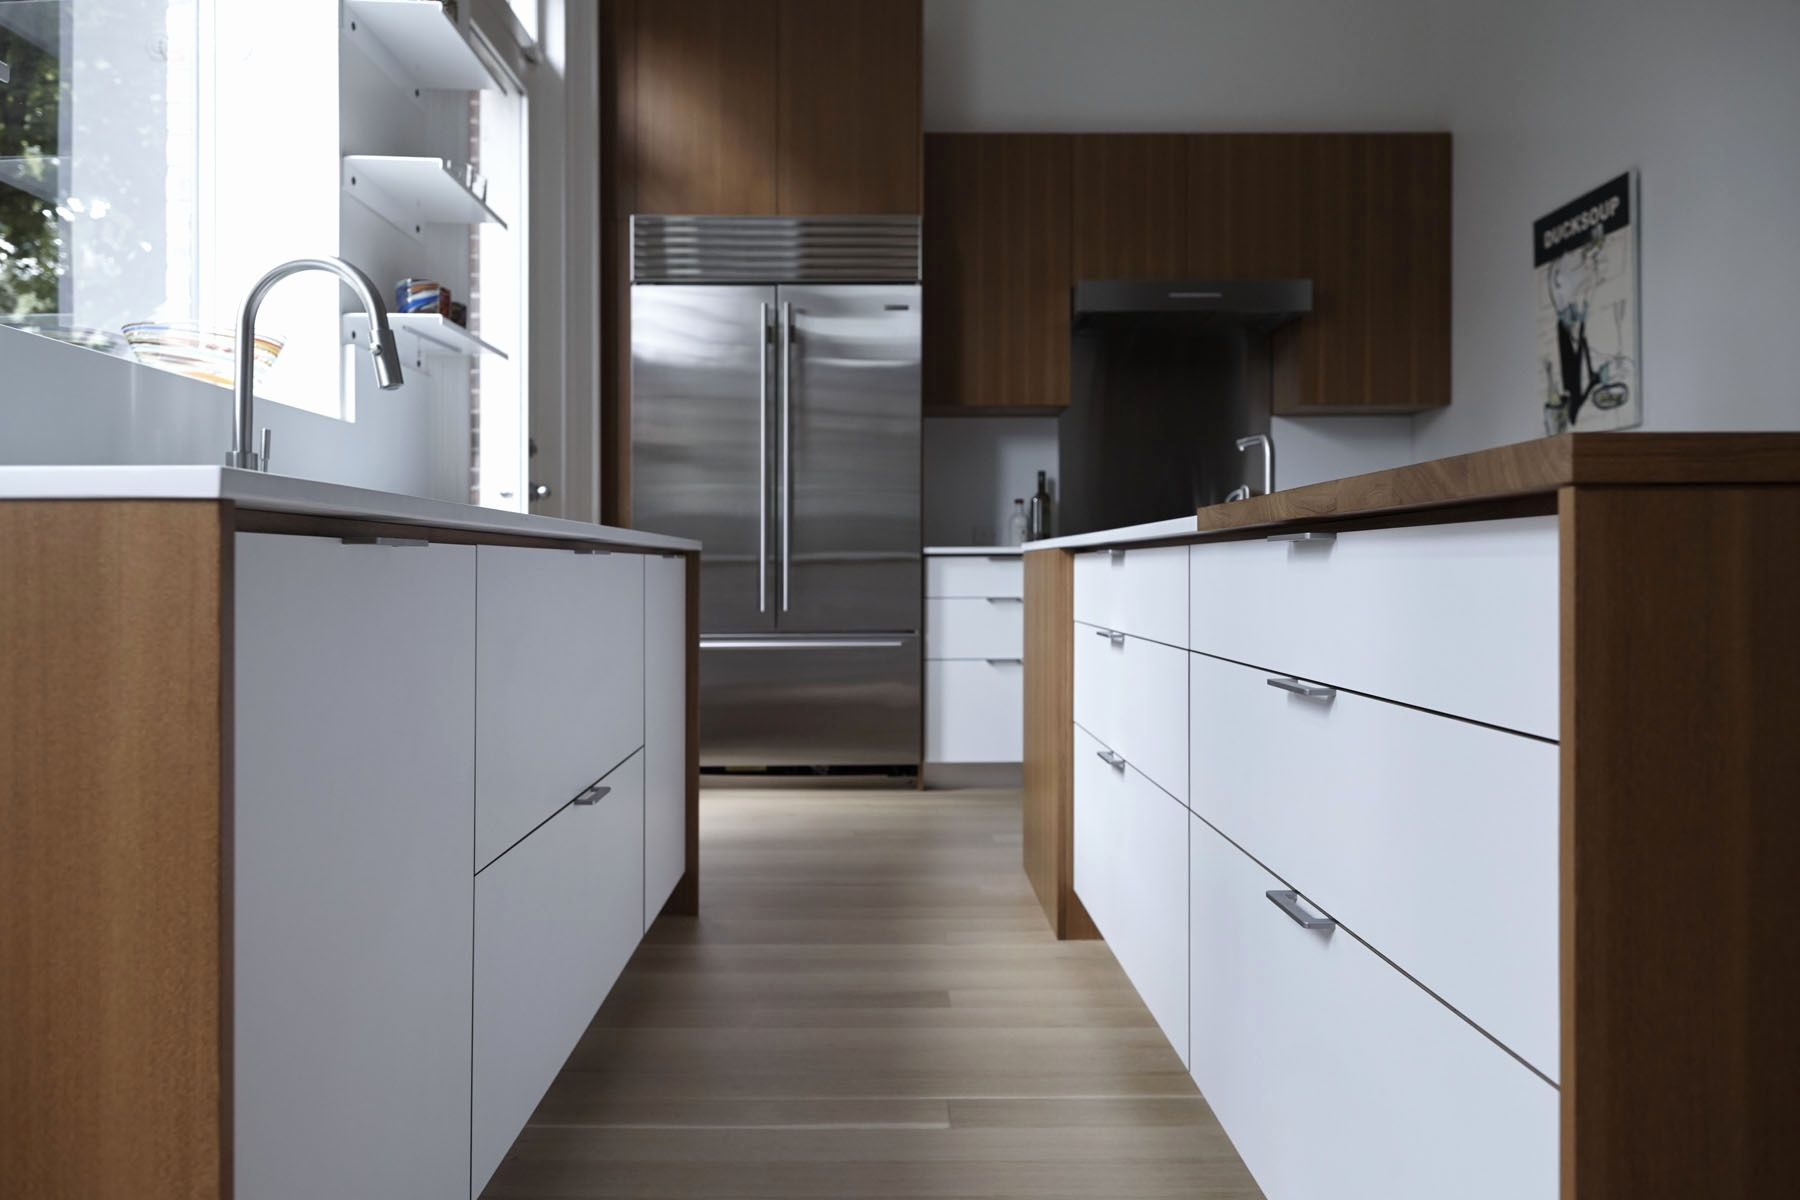 Kitchen Cabinets Brooklyn Inspirational Henry Built Cabinets Cost Kitchen Remodel Inspiration Urban Kitchen Brooklyn Kitchen